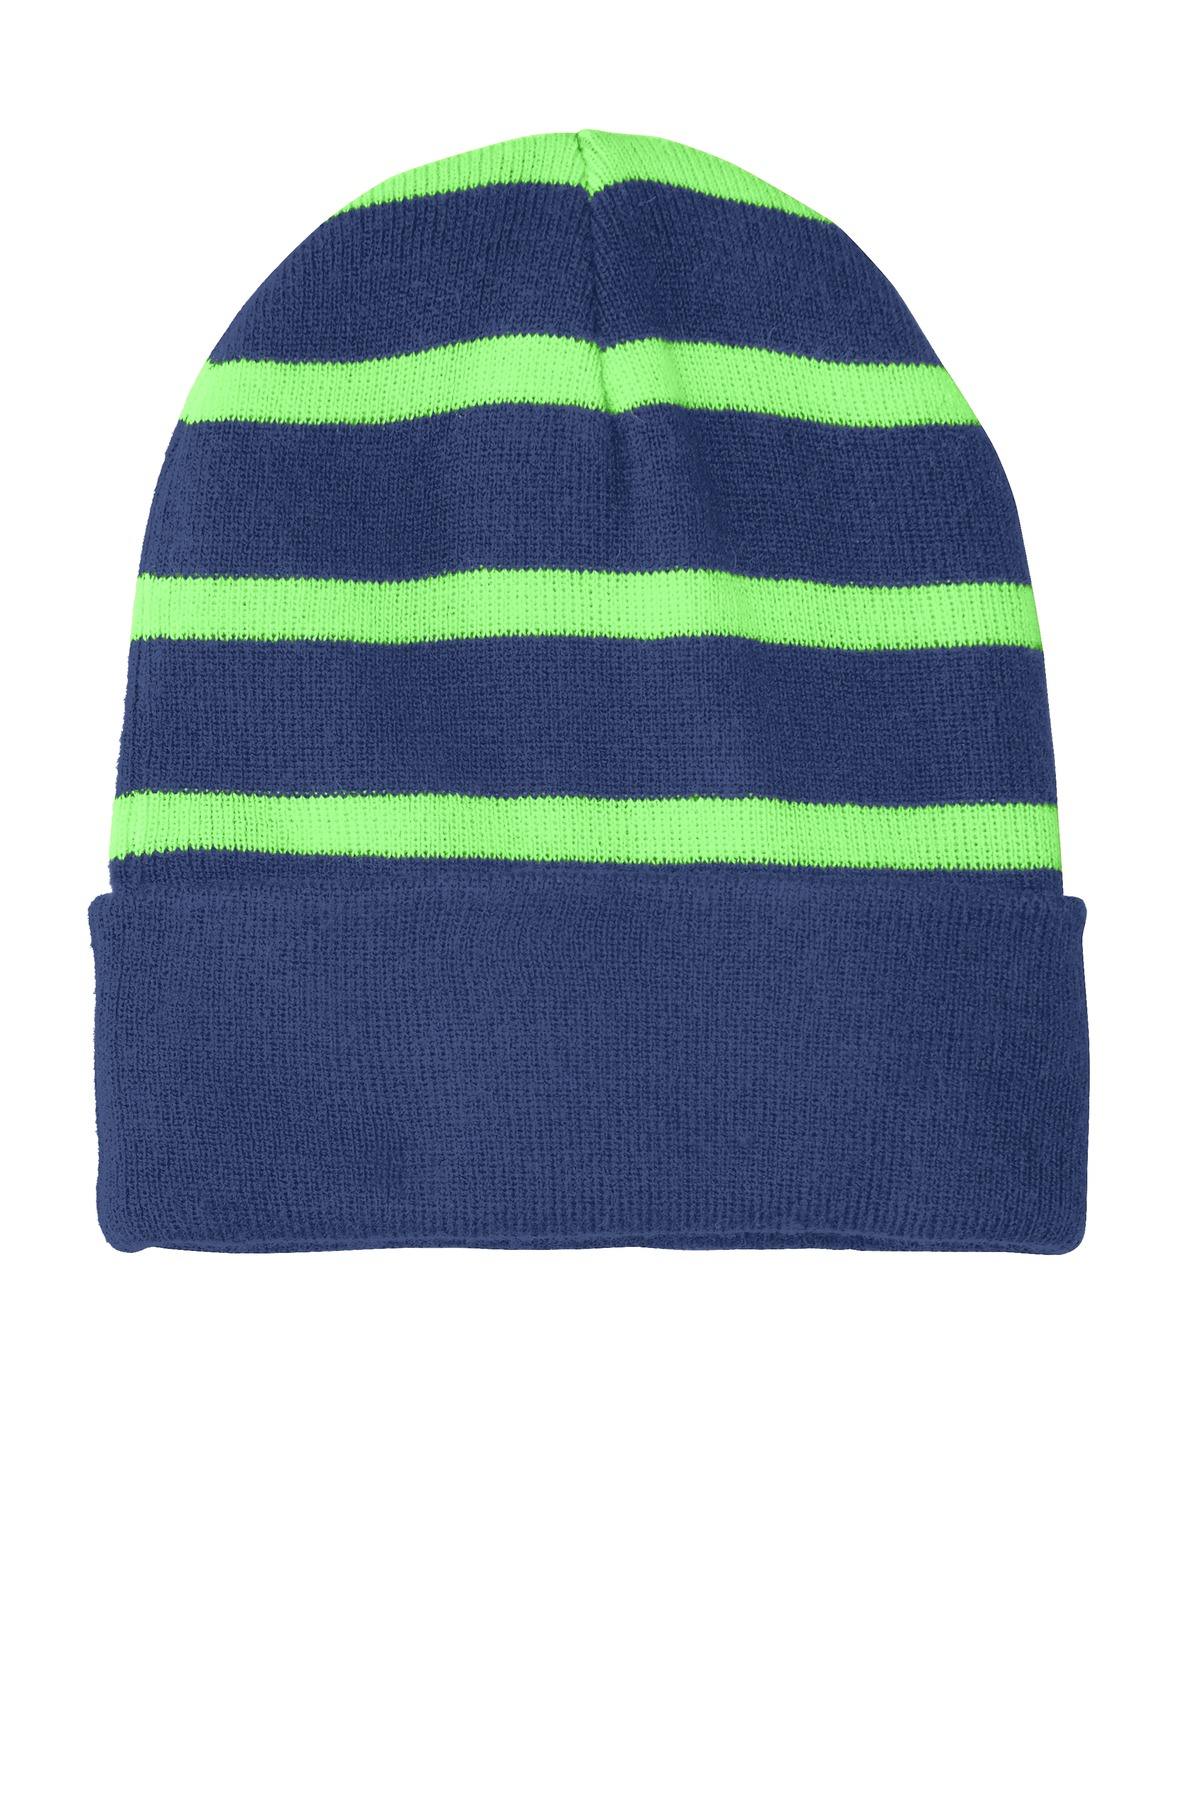 Sport-Tek ®  Striped Beanie with Solid Band. STC31 - Team Navy/ Flash Green